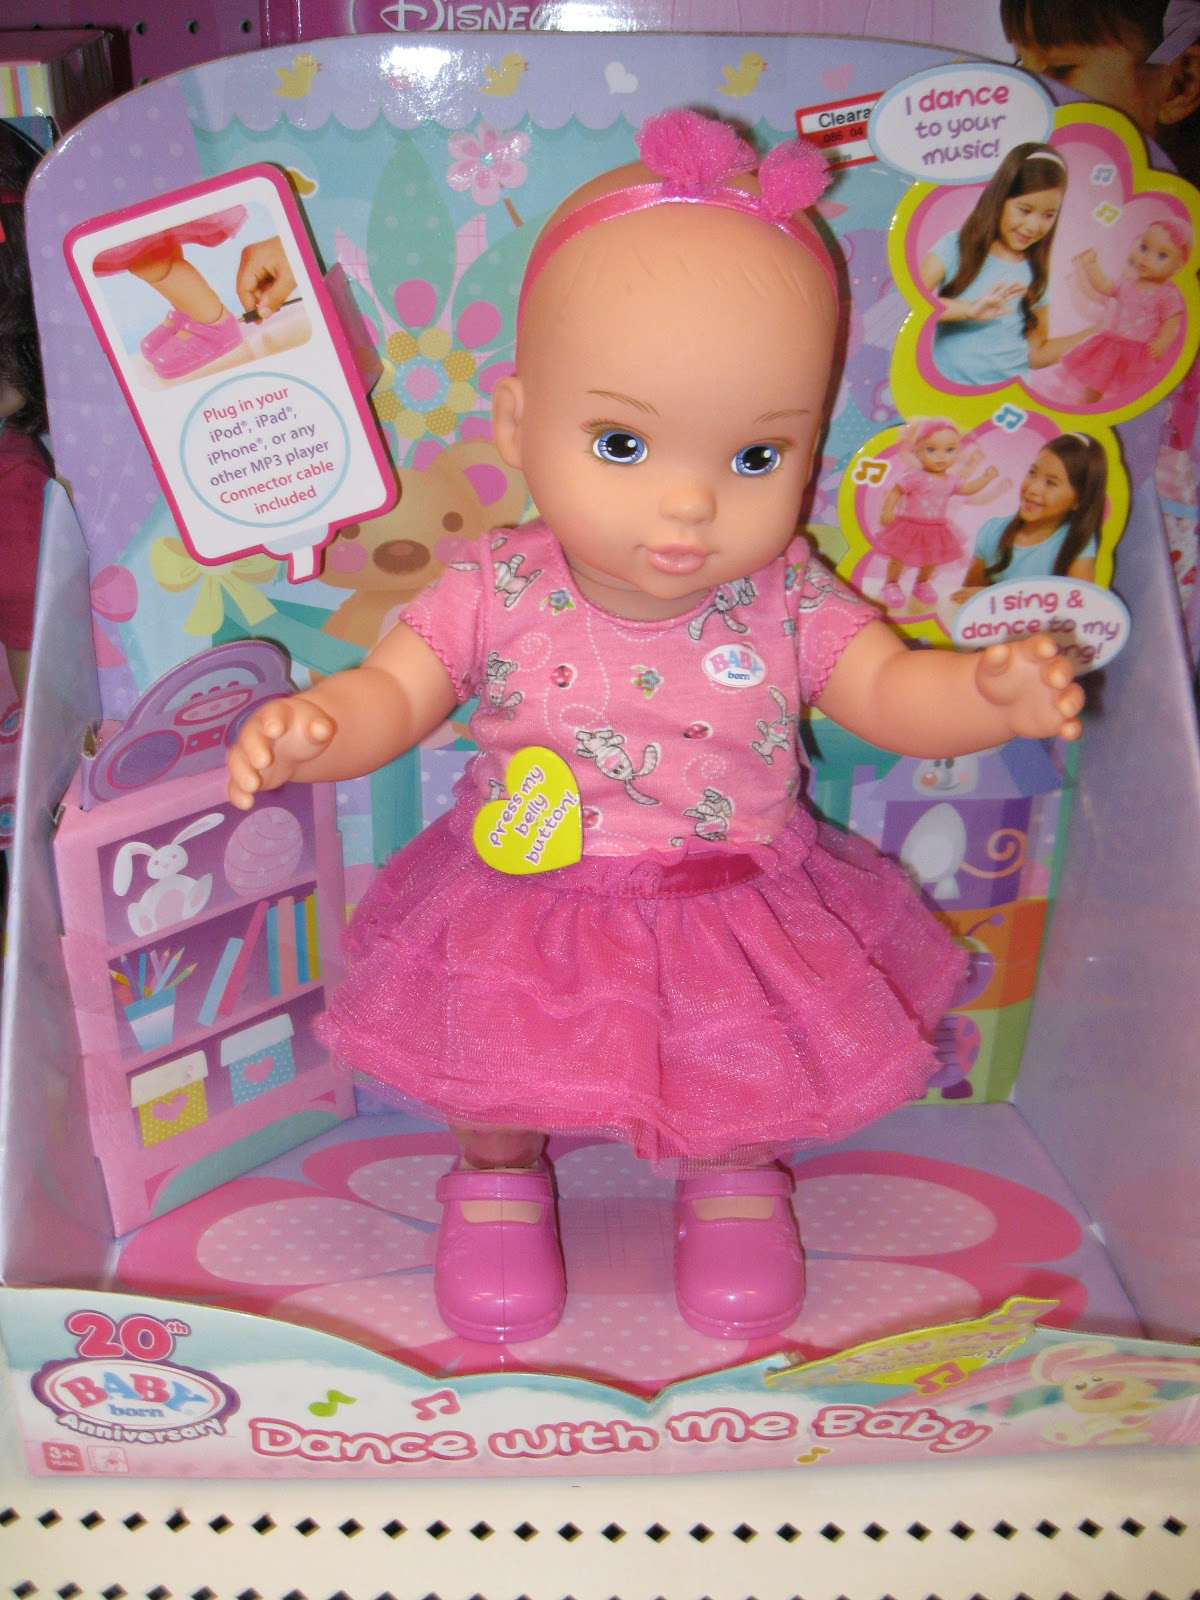 Target Toys For Toddlers : Target toy clearance circo dolls barbie fisher price